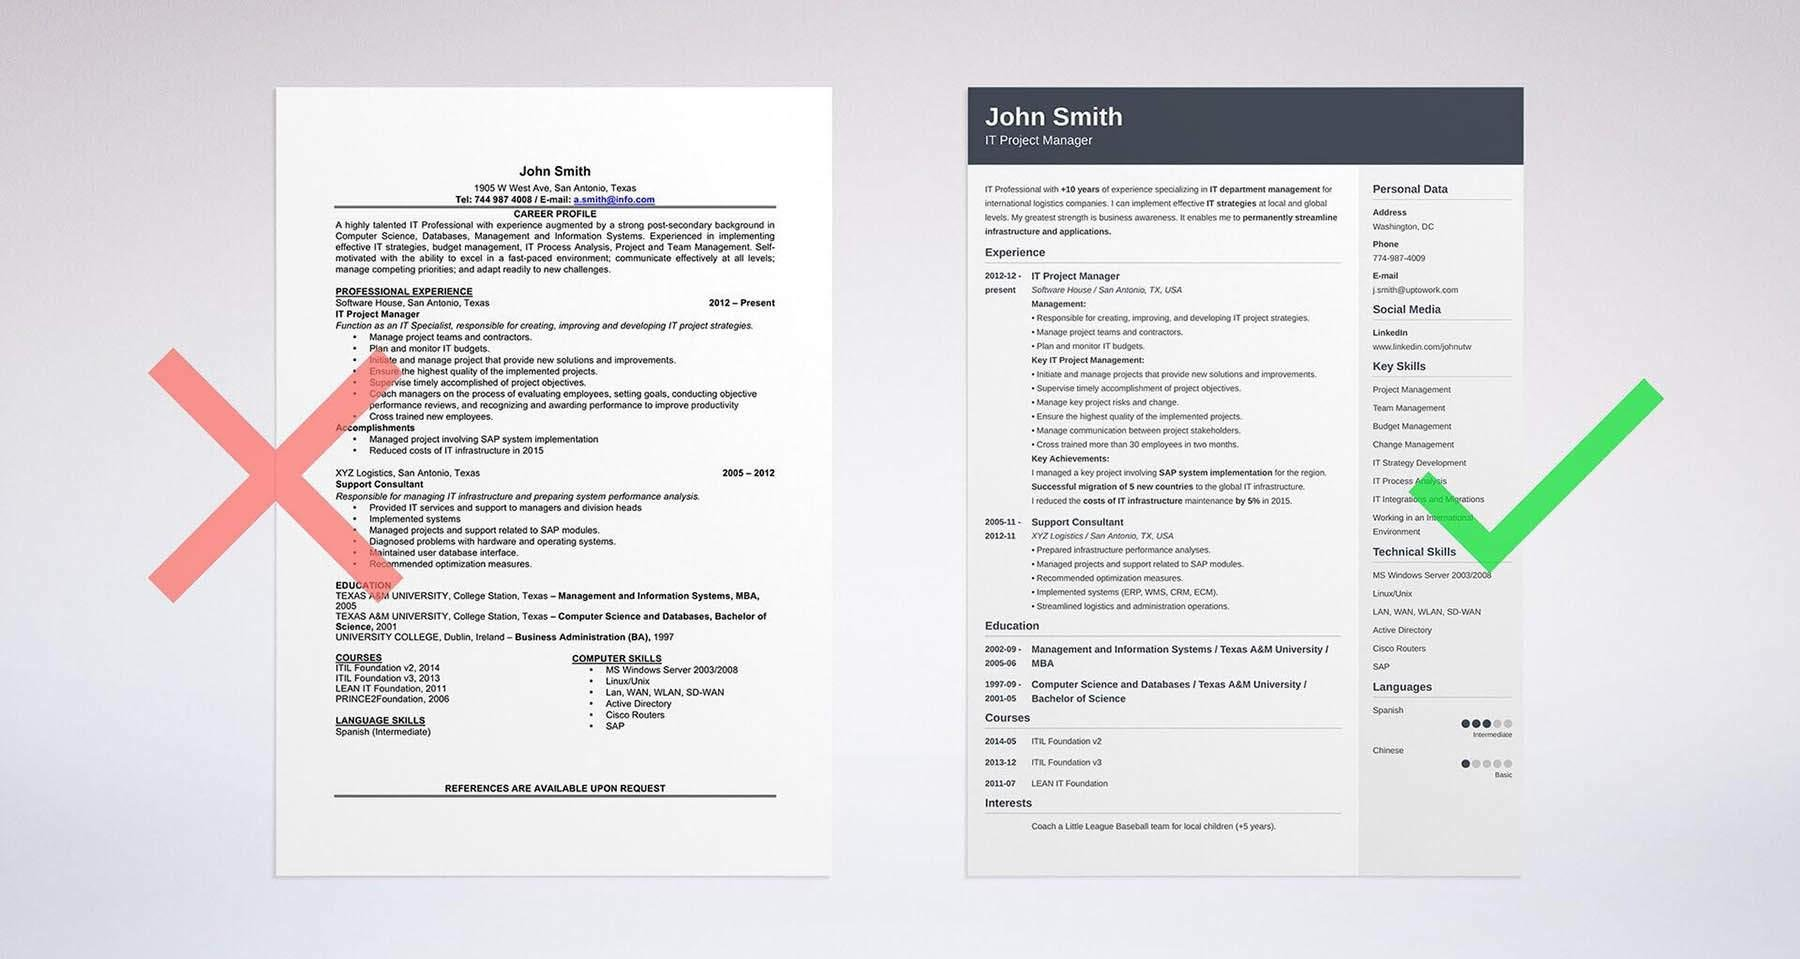 20+ Resume Objective Examples Use Them On Your Resume (Tips)